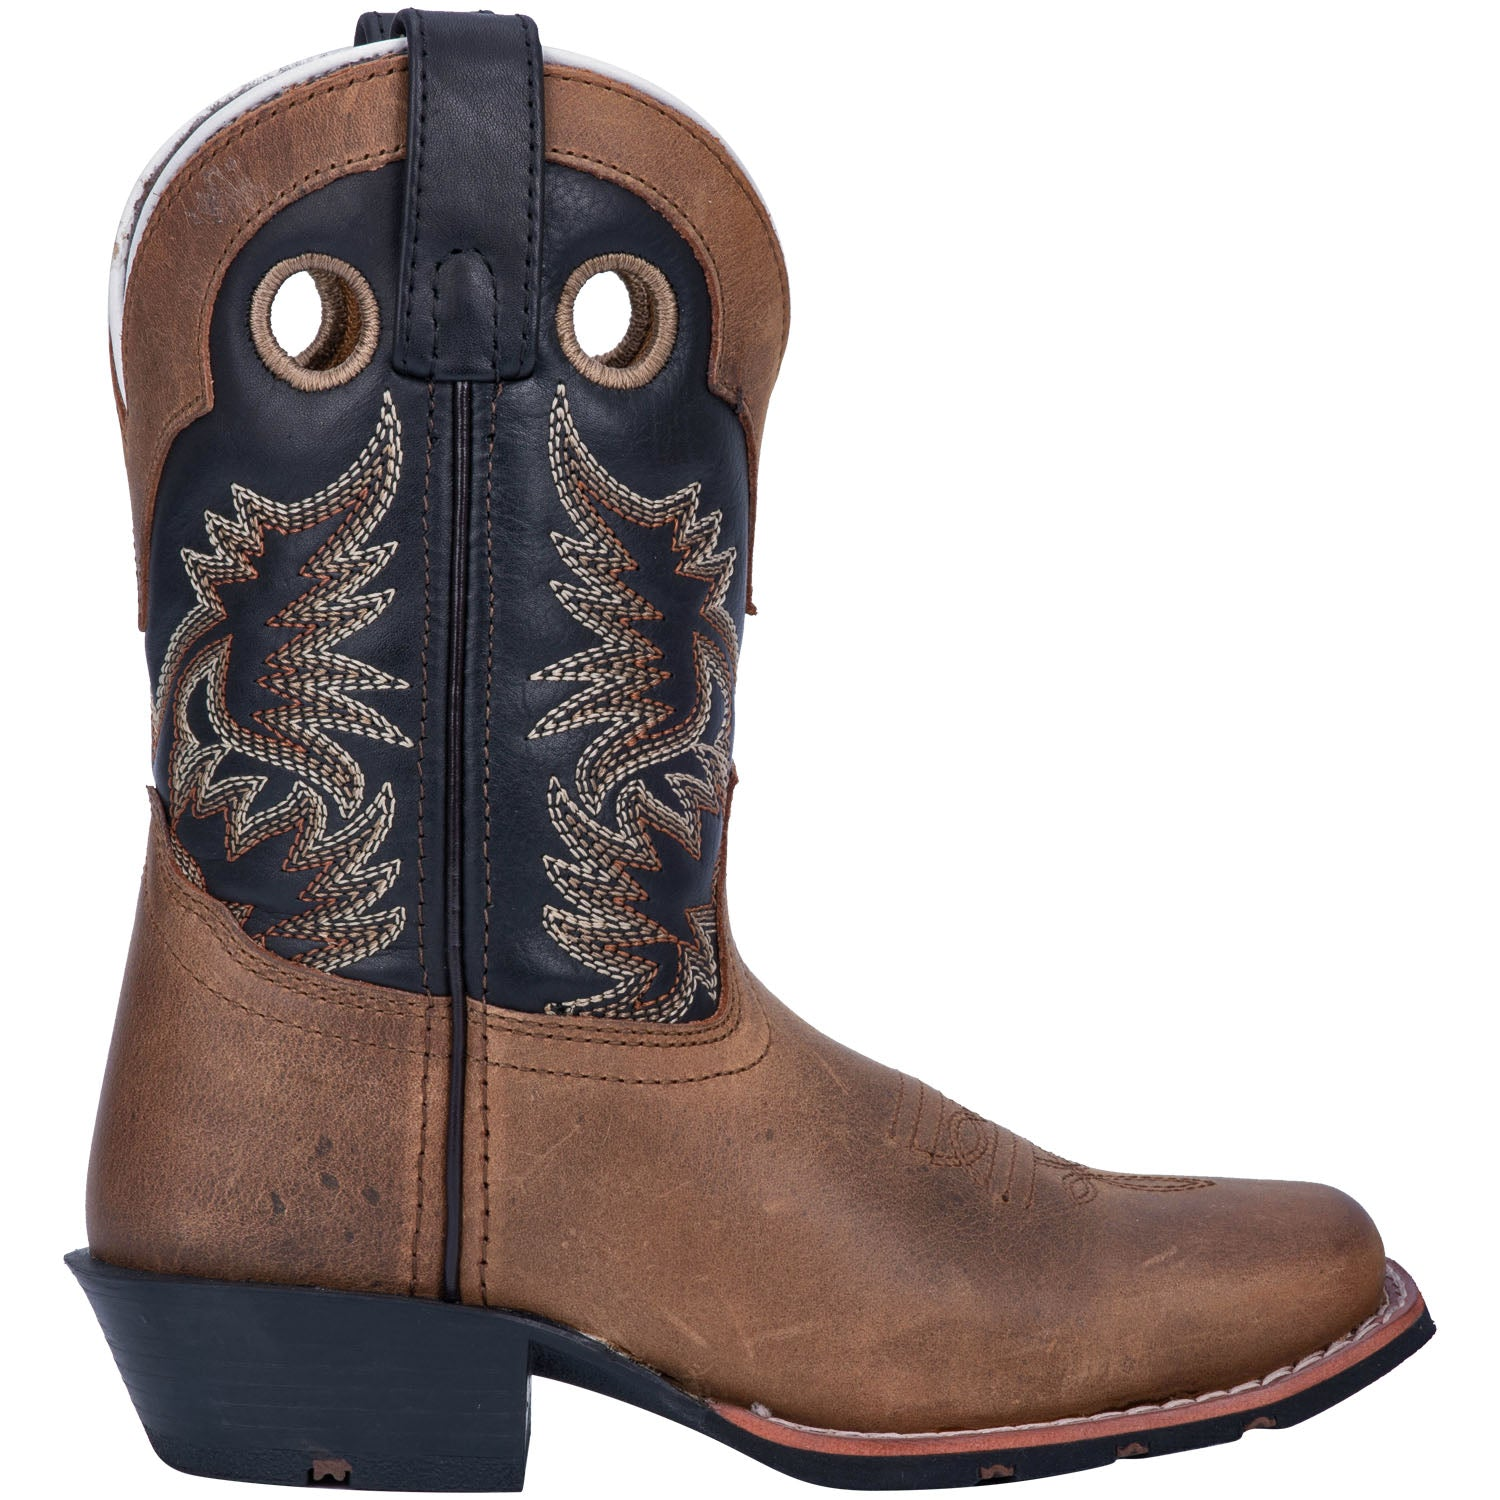 RASCAL LEATHER CHILDREN'S BOOT